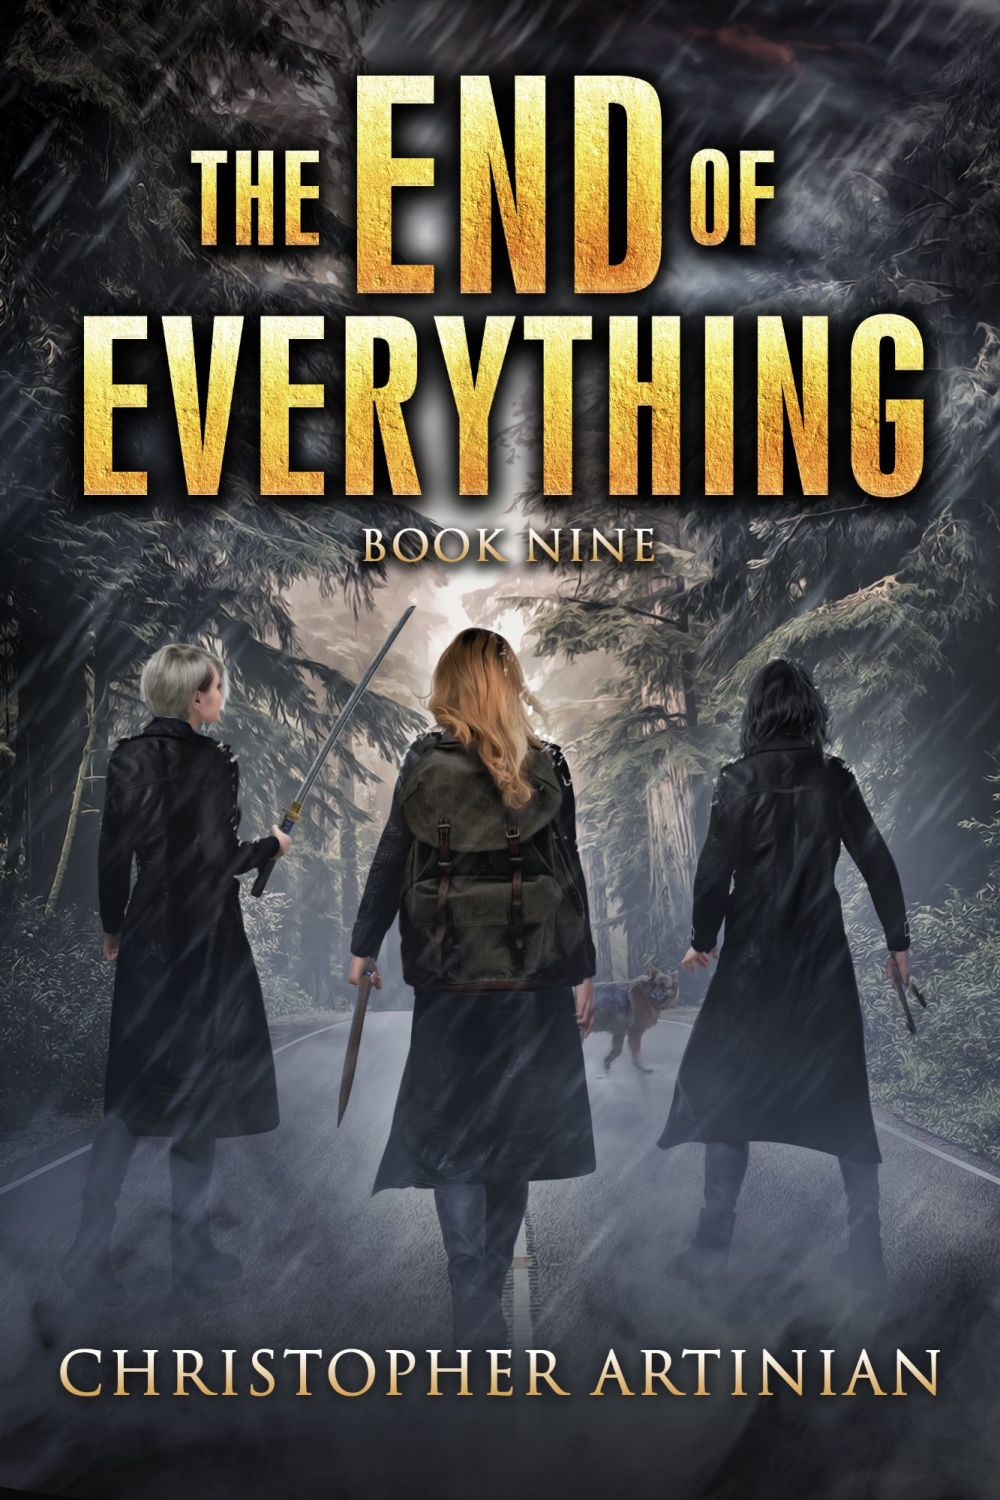 THE END OF EVERYTHING: BOOK 9 (SIGNED PAPERBACK)